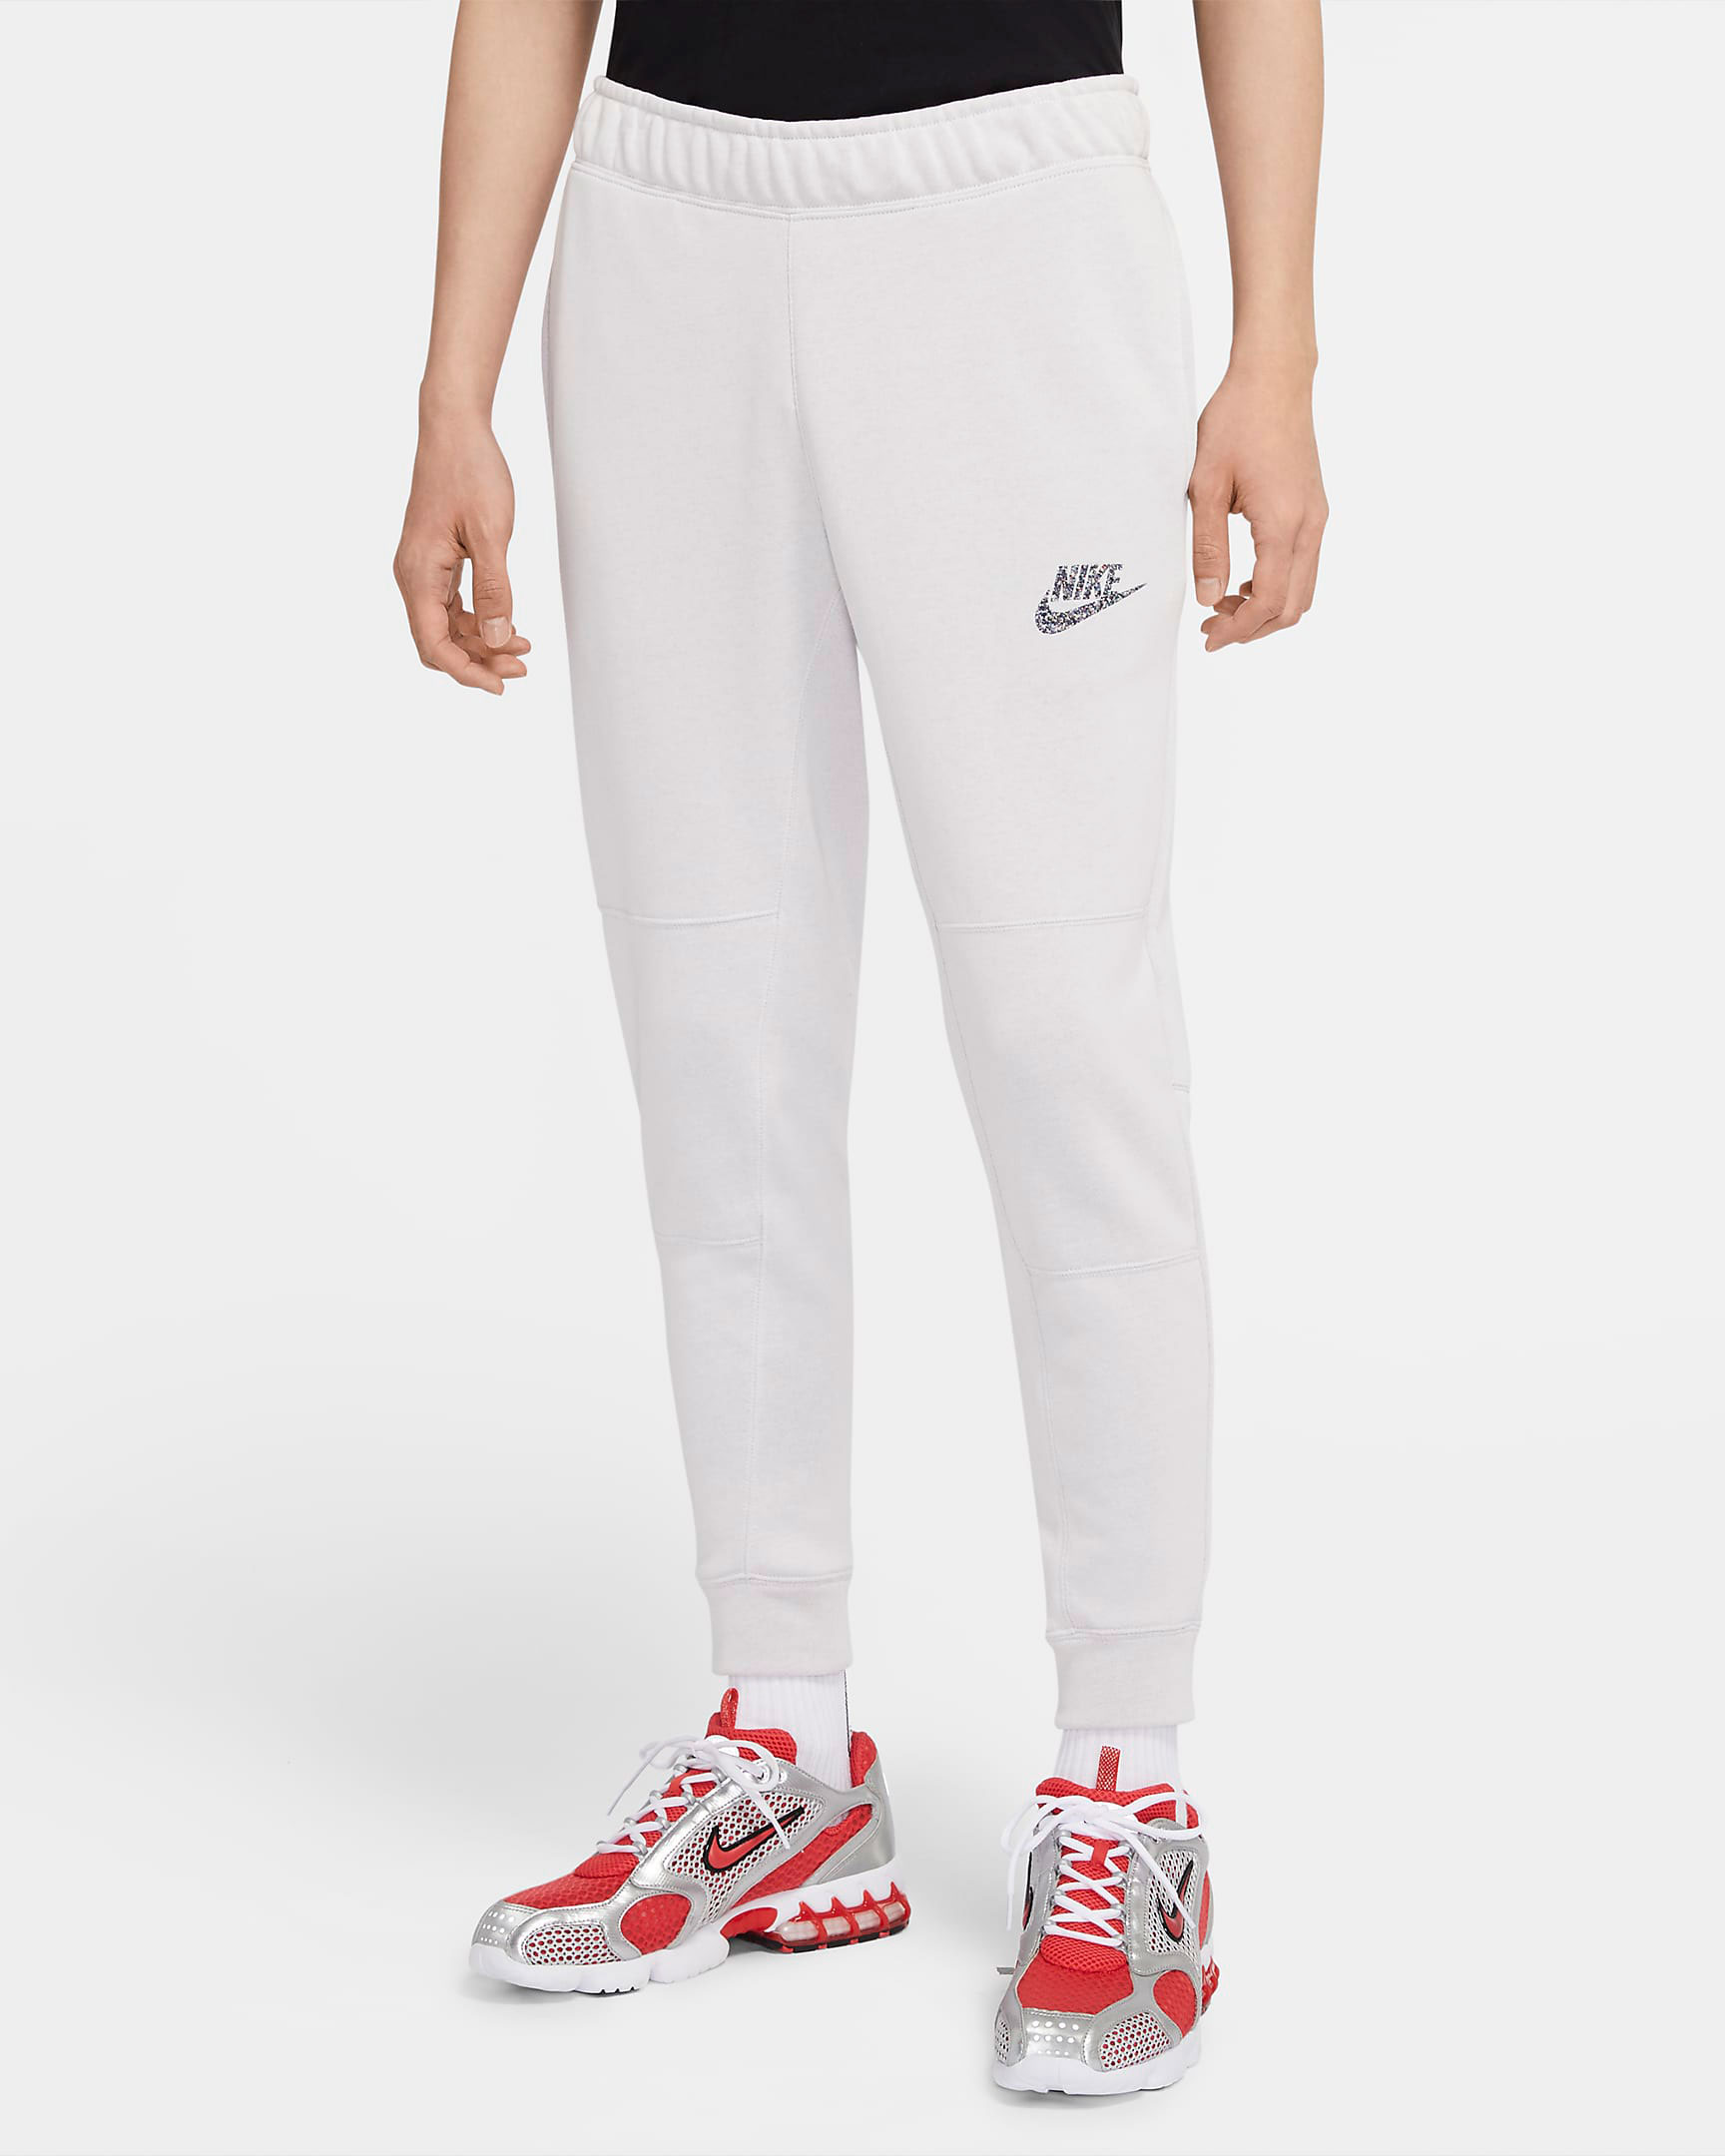 nike-air-vapormax-flyknit-2020-pure-platinum-jogger-pants-match-2